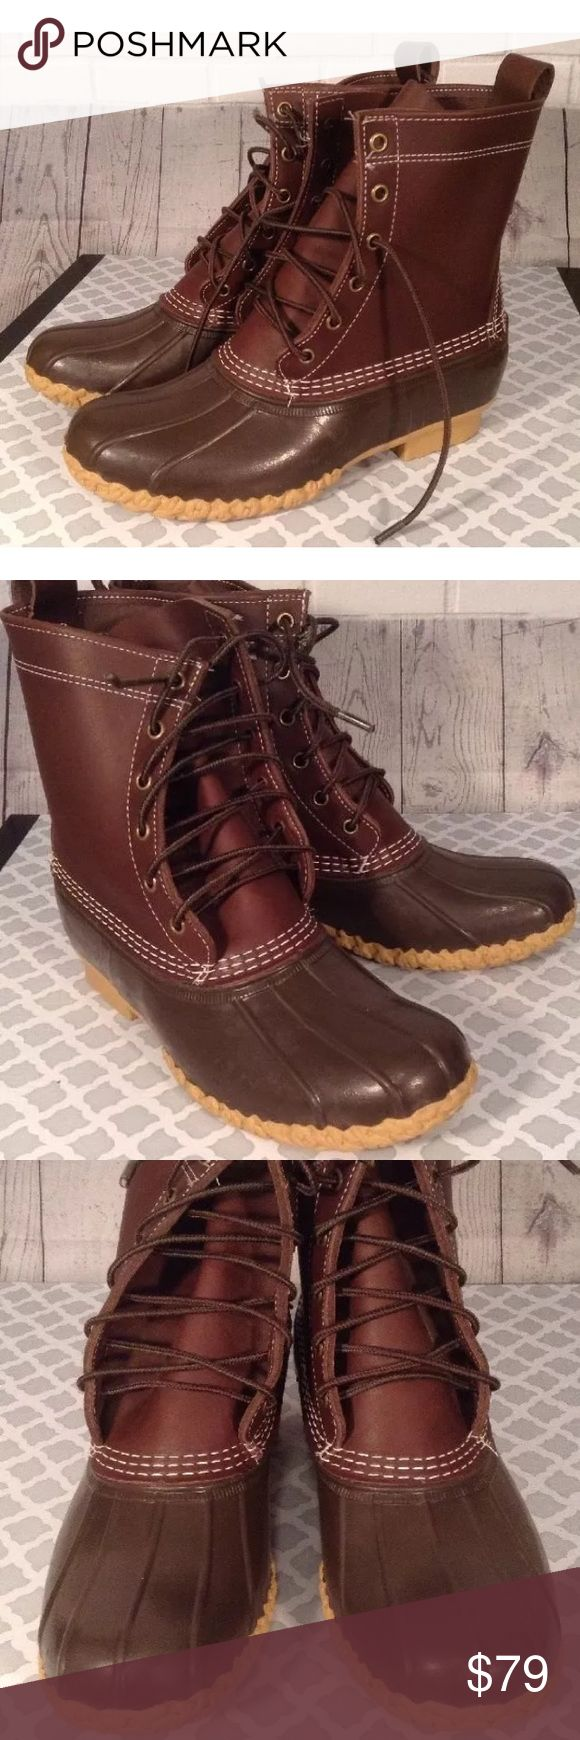 "LL Bean Boots Duck Brown Rubber Leather LL Bean Boots Duck Brown Rubber/Leather 8"" Thinsulate Men's 6M Women's 8M  Practically New, never worn outside LL Bean Shoes Winter & Rain Boots"